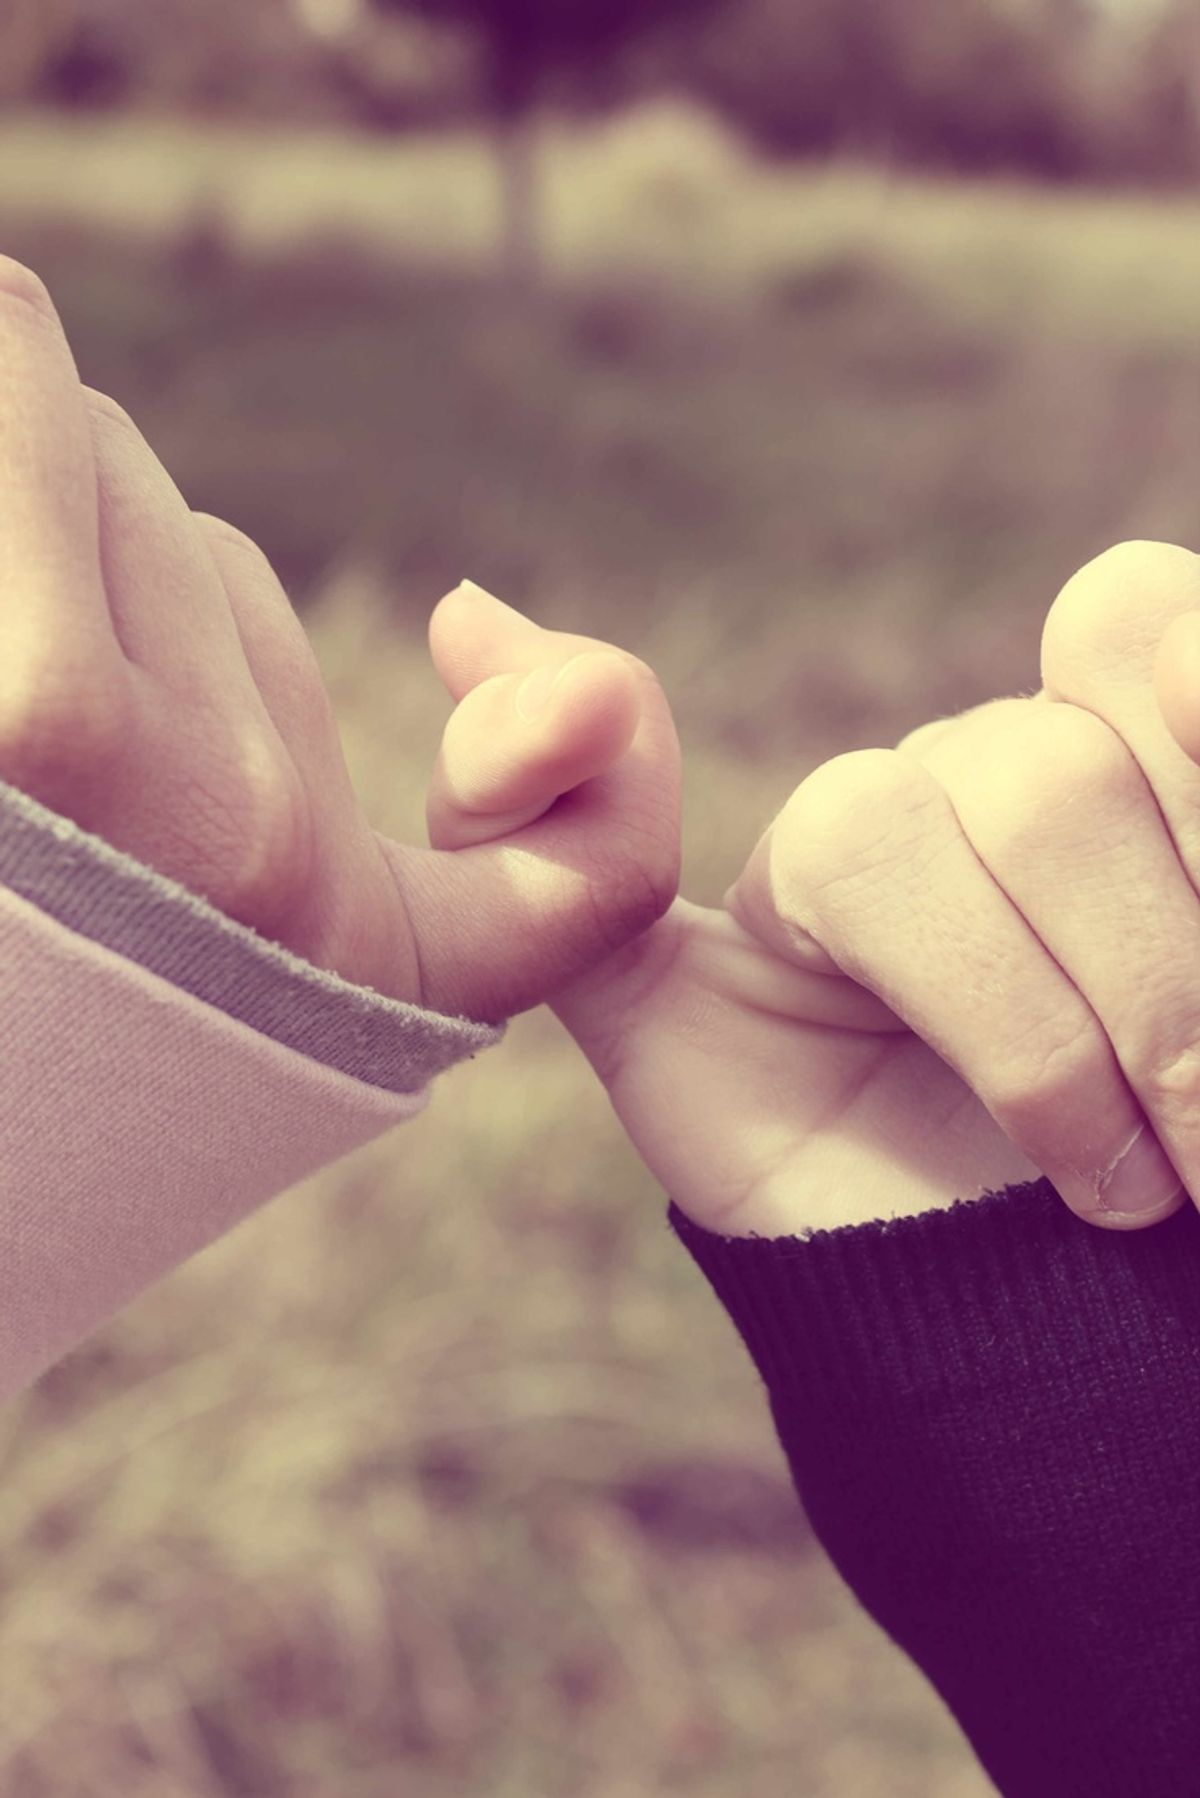 The Importance Of Keeping Promises